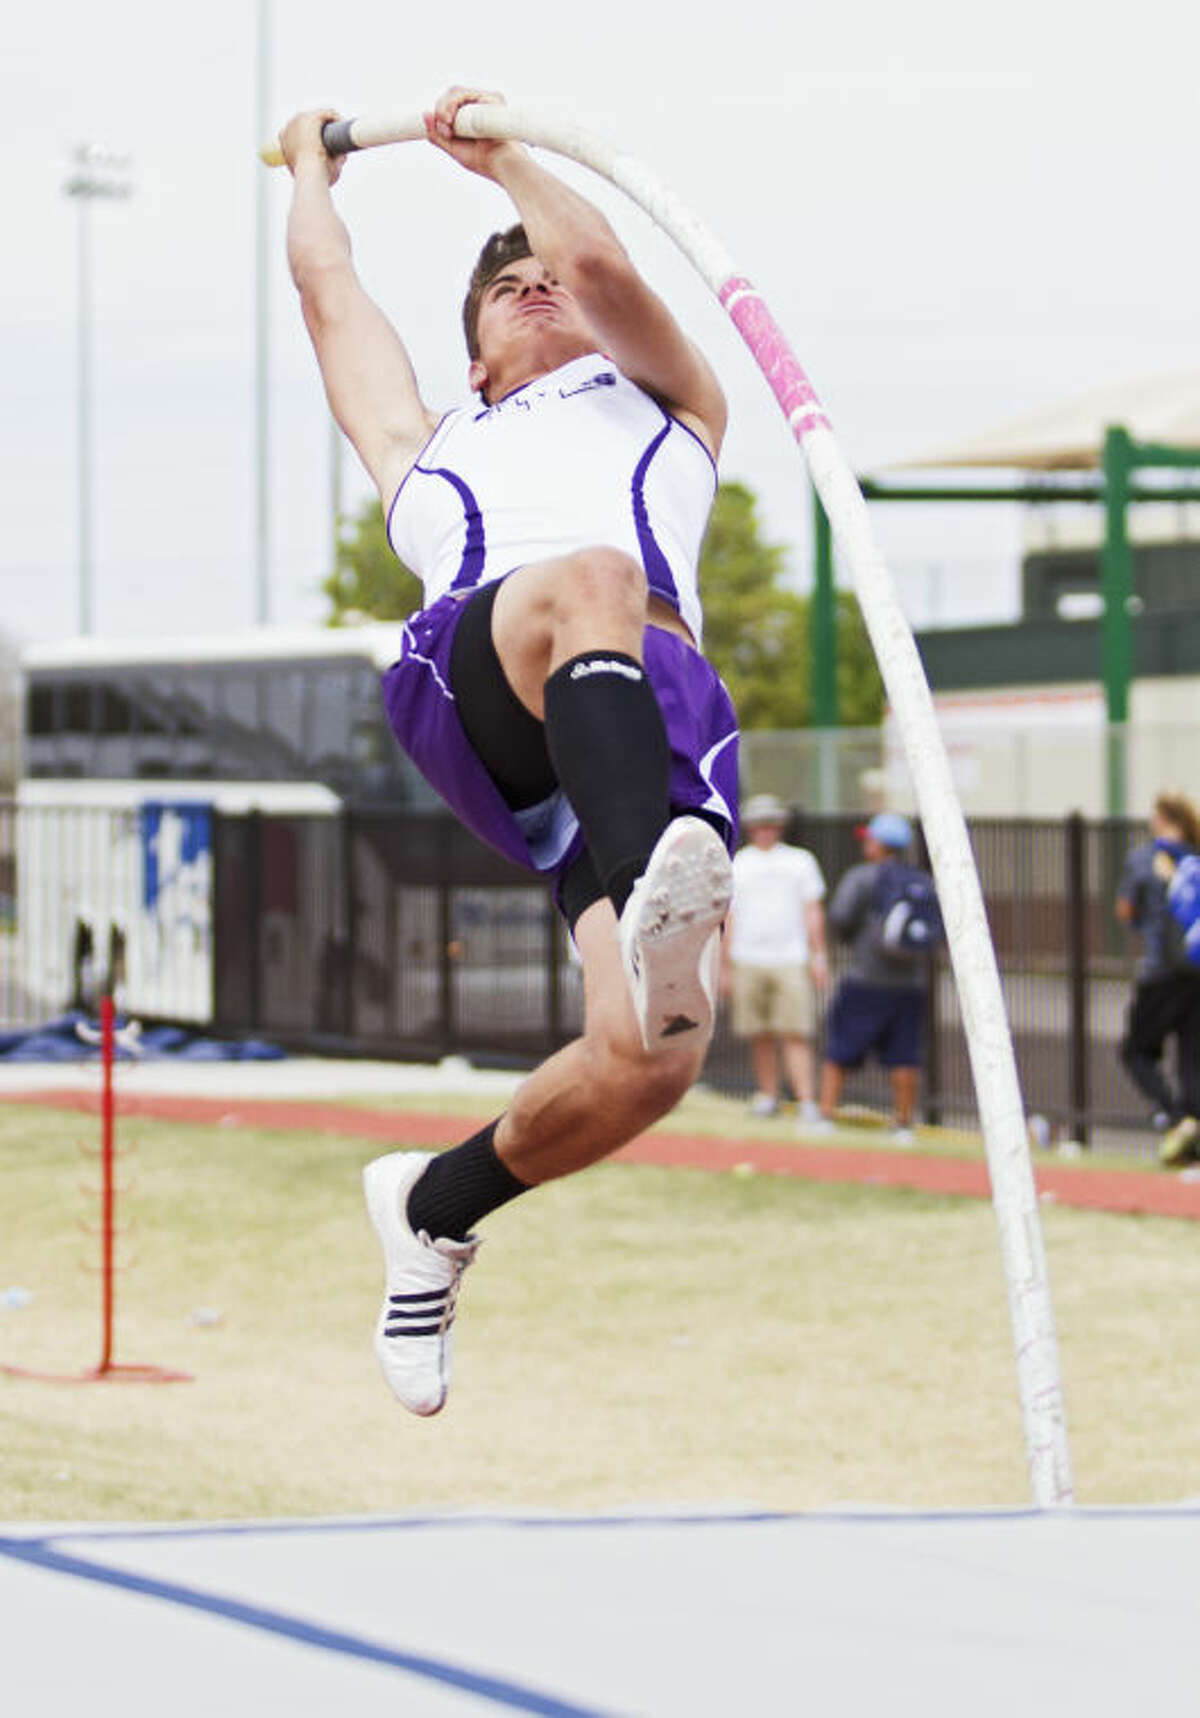 Midland's Kaleb Slack vaults into the air during his first place attempt during the UIL District 2-5A Track Championship on Thursday at Lowrey Field in Lubbock. Slack finished in first place after clearing the 13 foot bar.